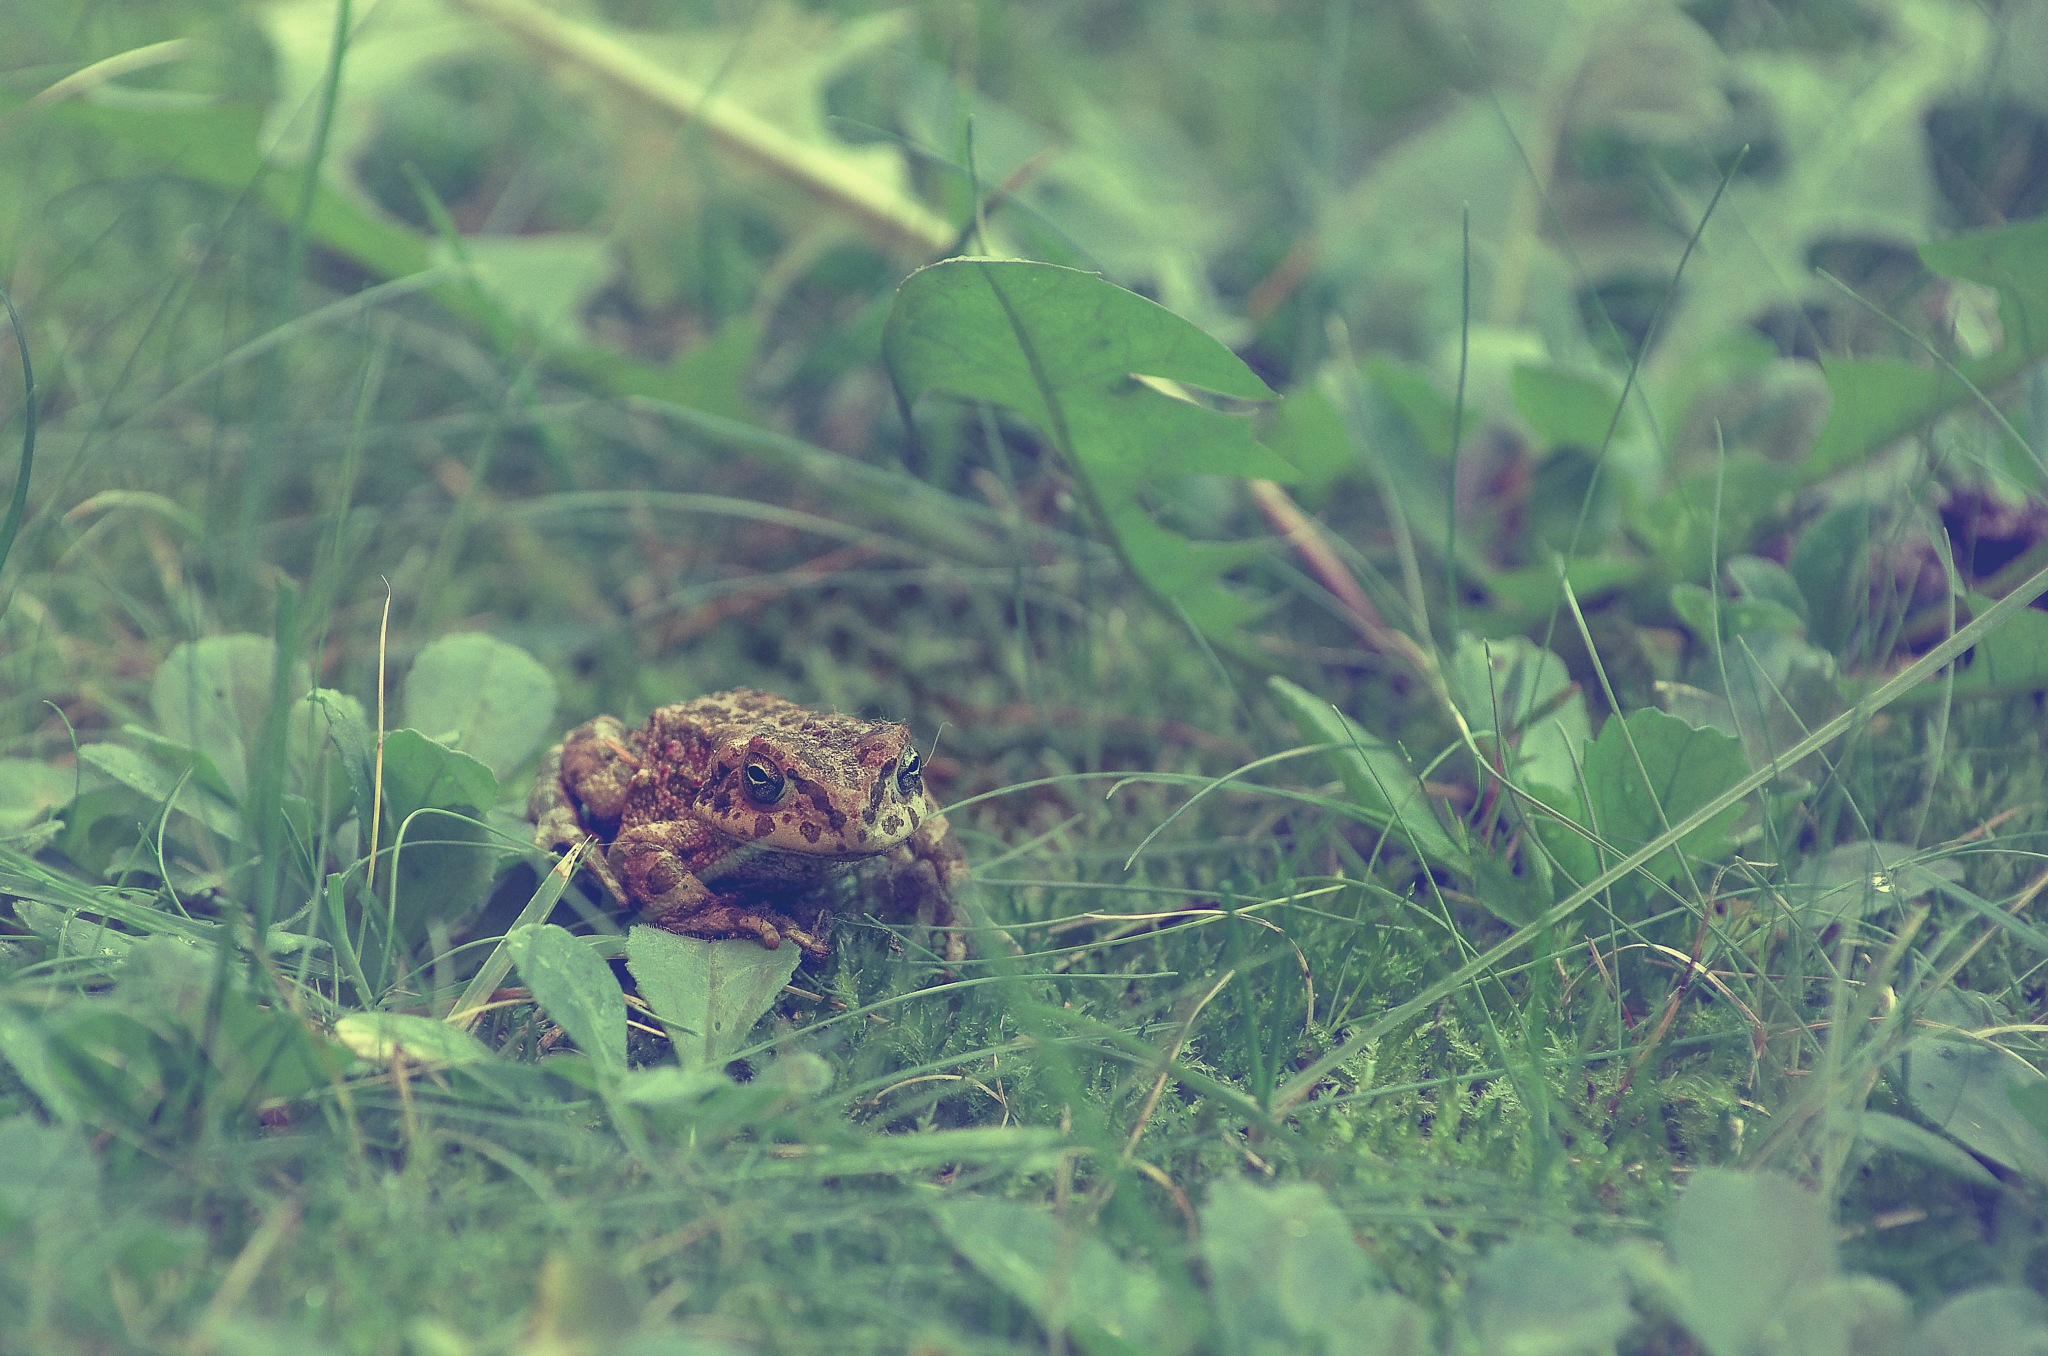 toad by andreabergamo1